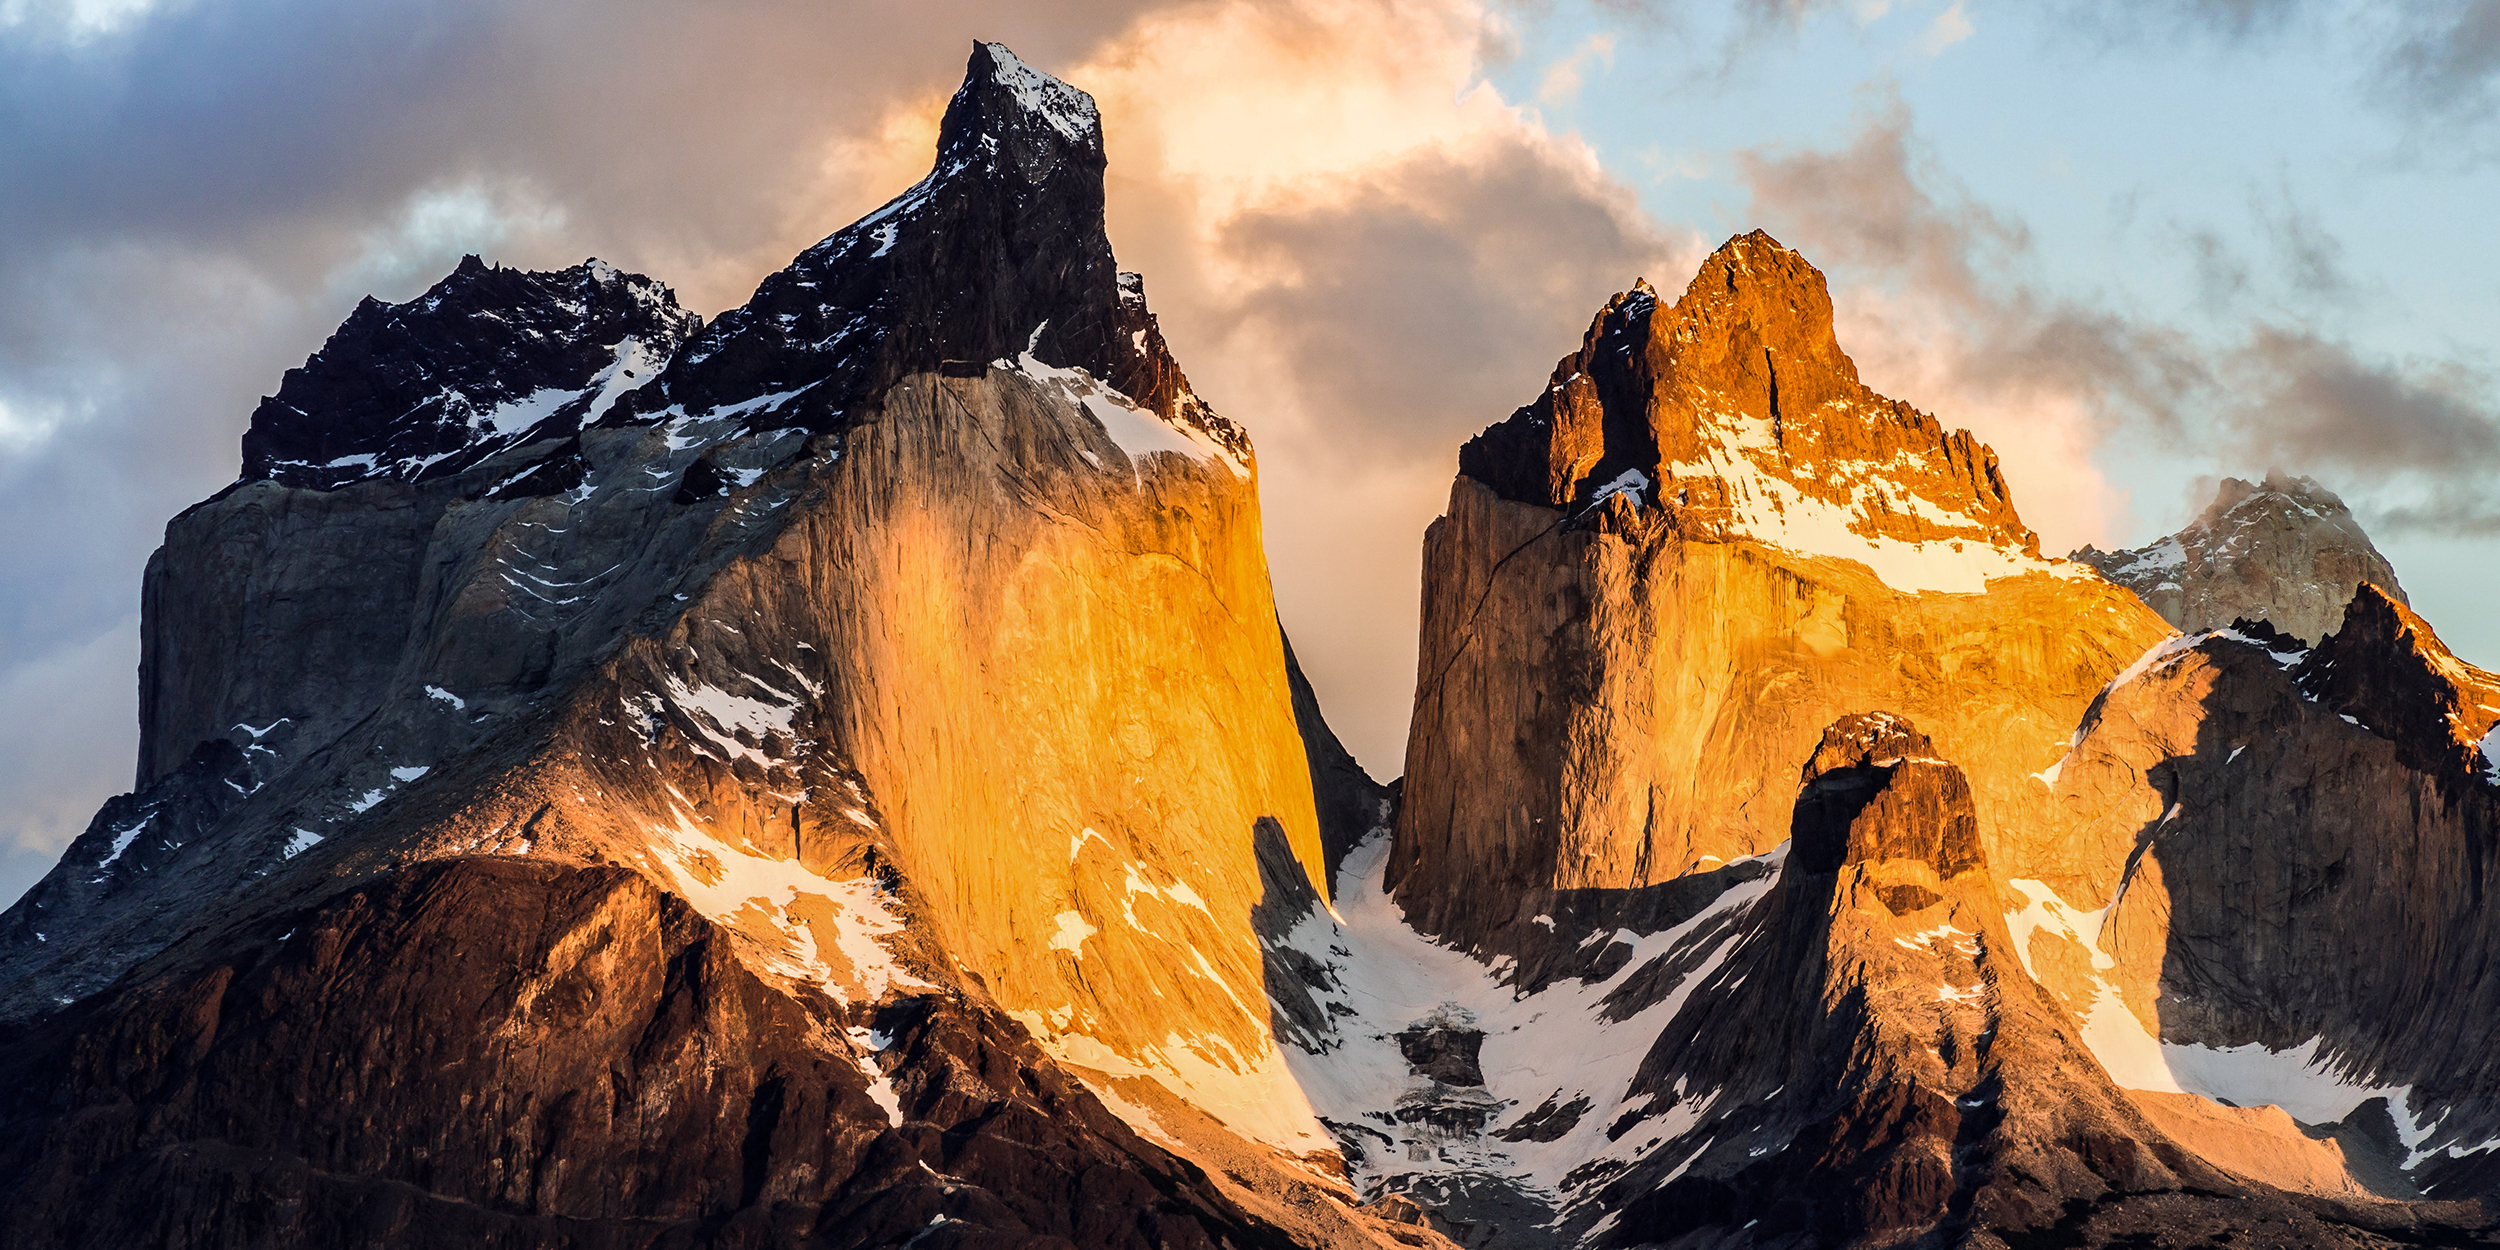 Horns Torres Del Paine National Park Chile Yampu Tours